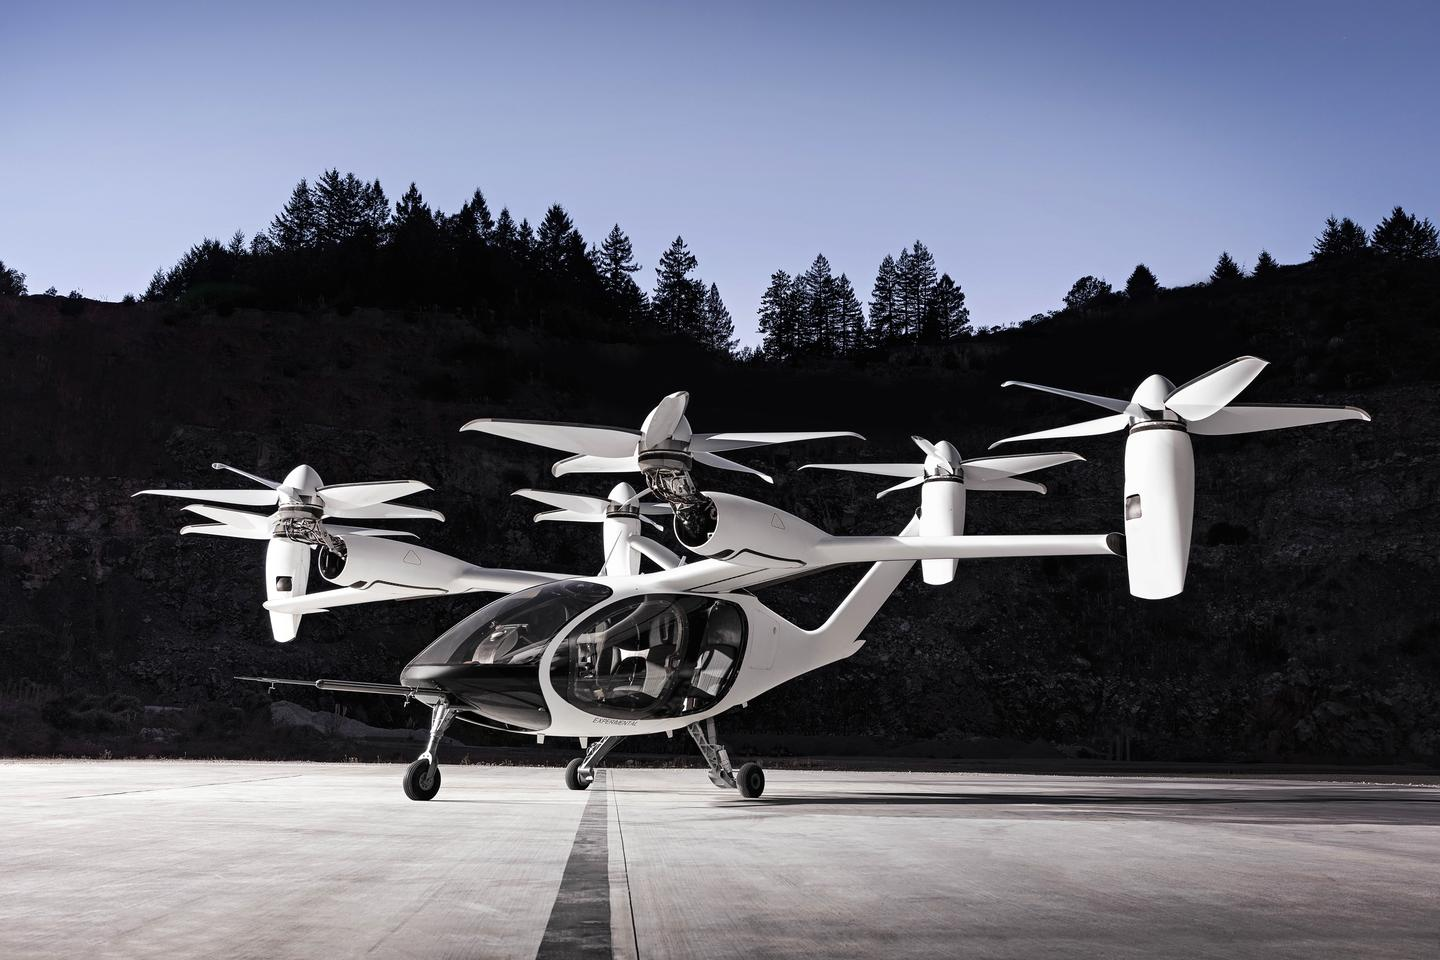 Joby Aviation has built and flight-tested its five-seat, six-rotor eVTOL air taxi